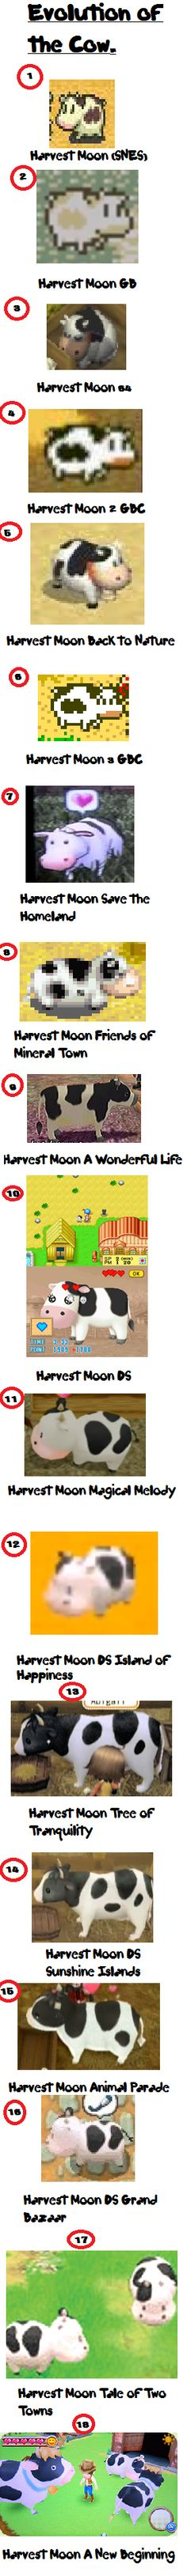 Every cow from all 18 Harvest Moon games. My favorite will always be the cow from HM:TOTT